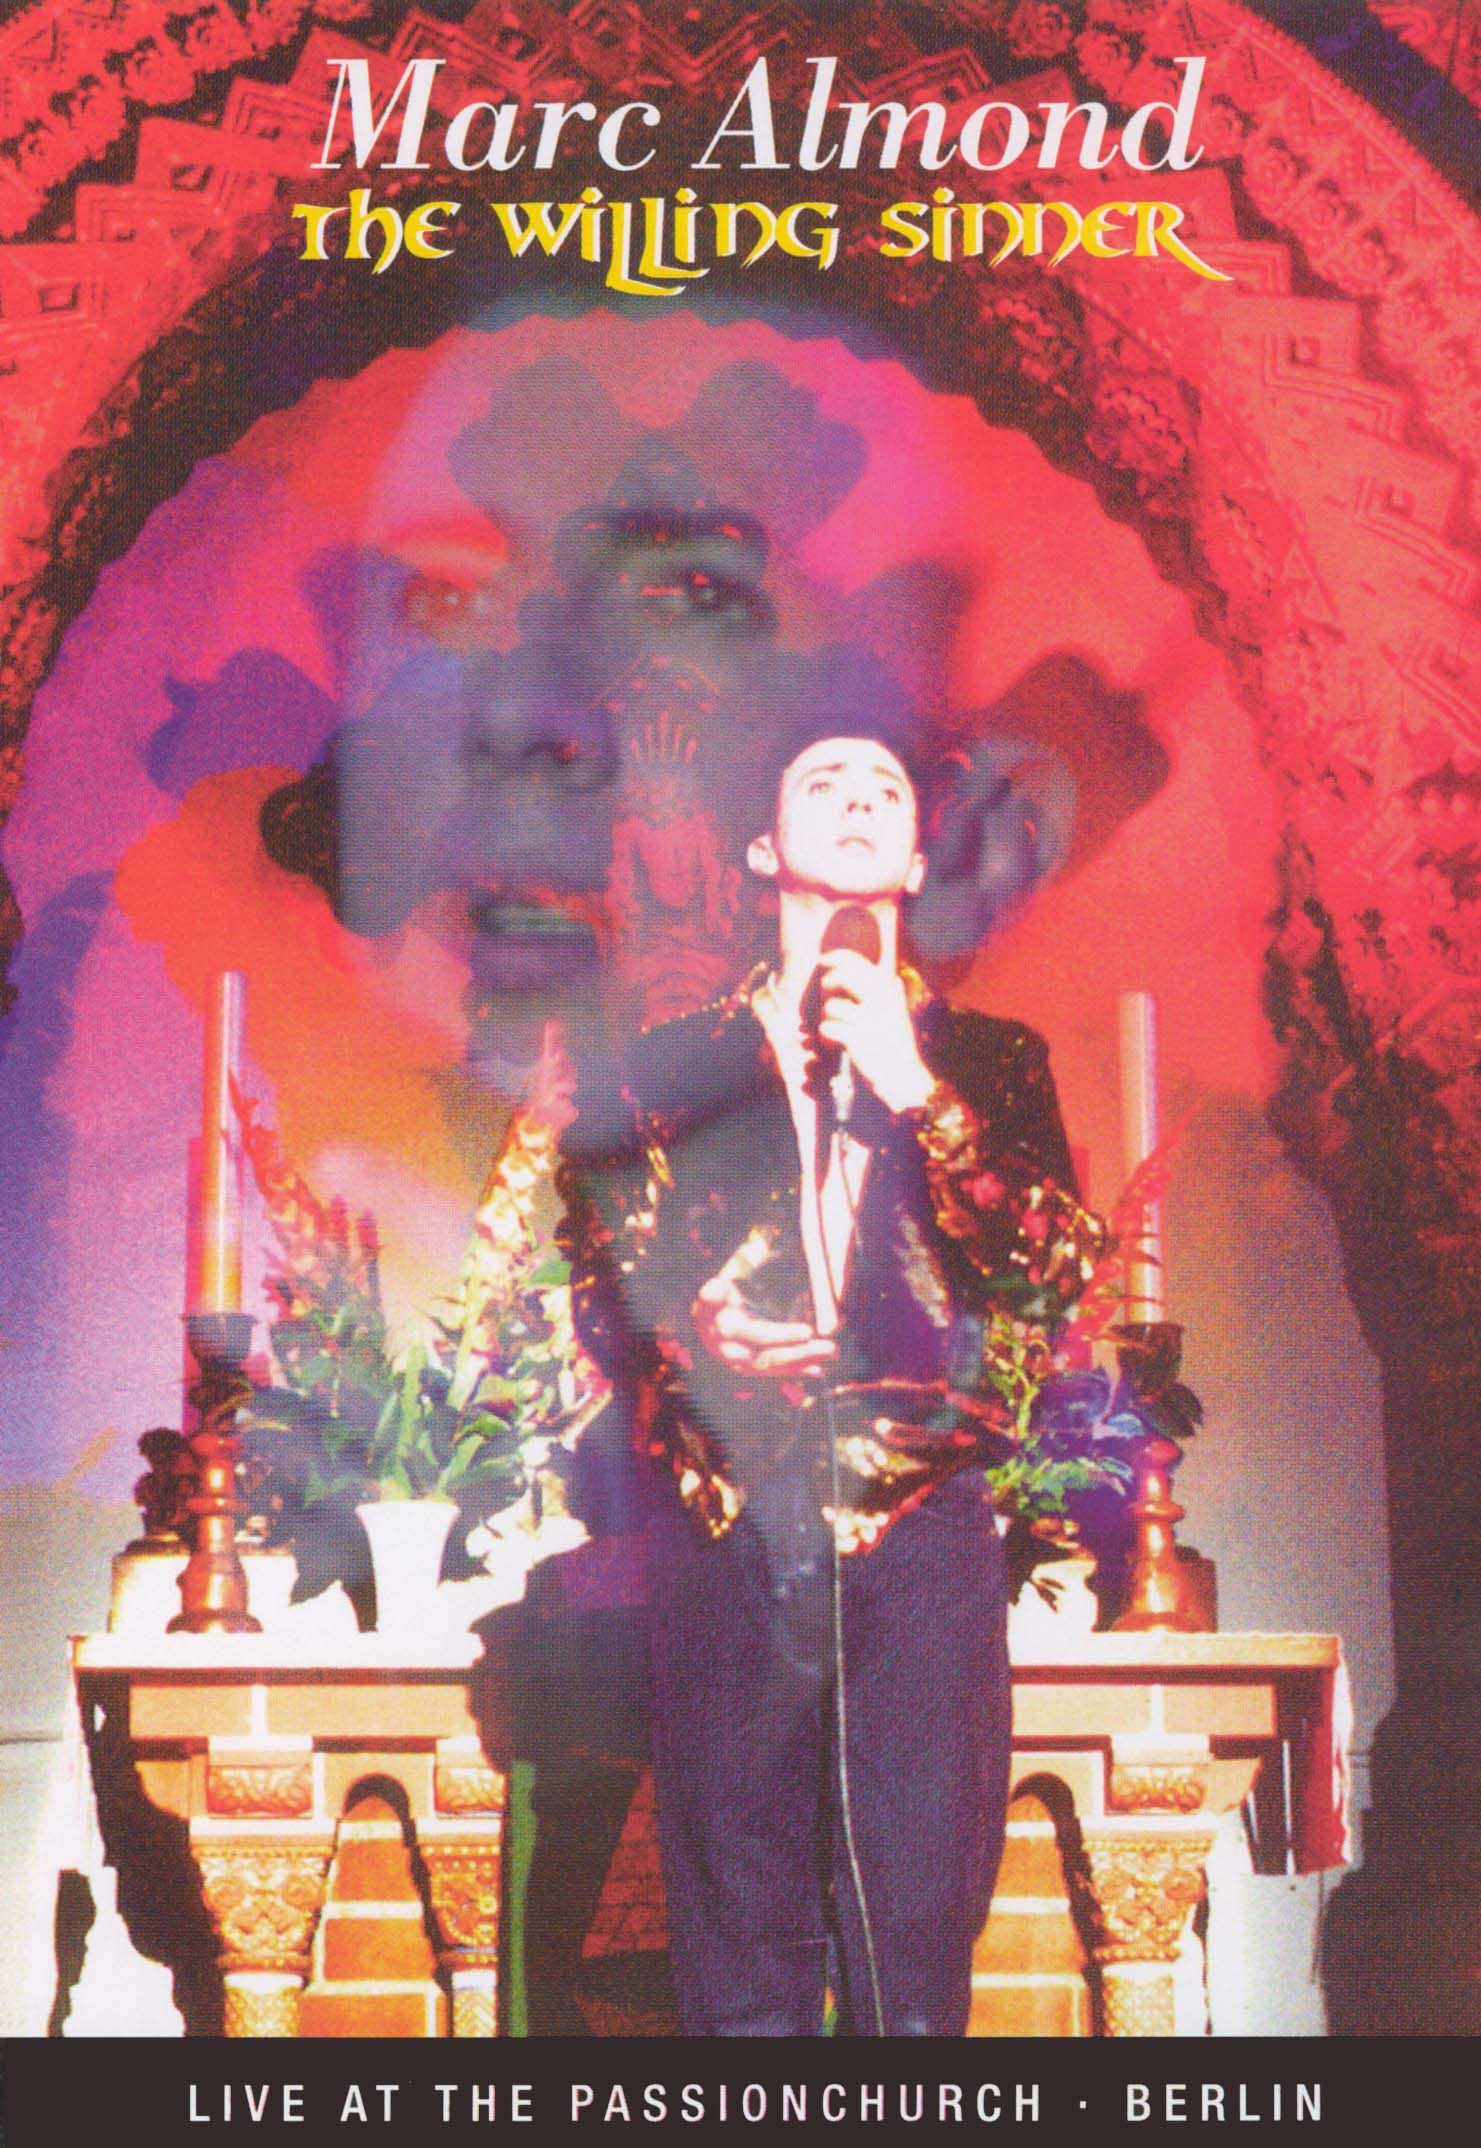 Marc Almond: The Willing Sinner - Live at the Passionchurch, Berlin